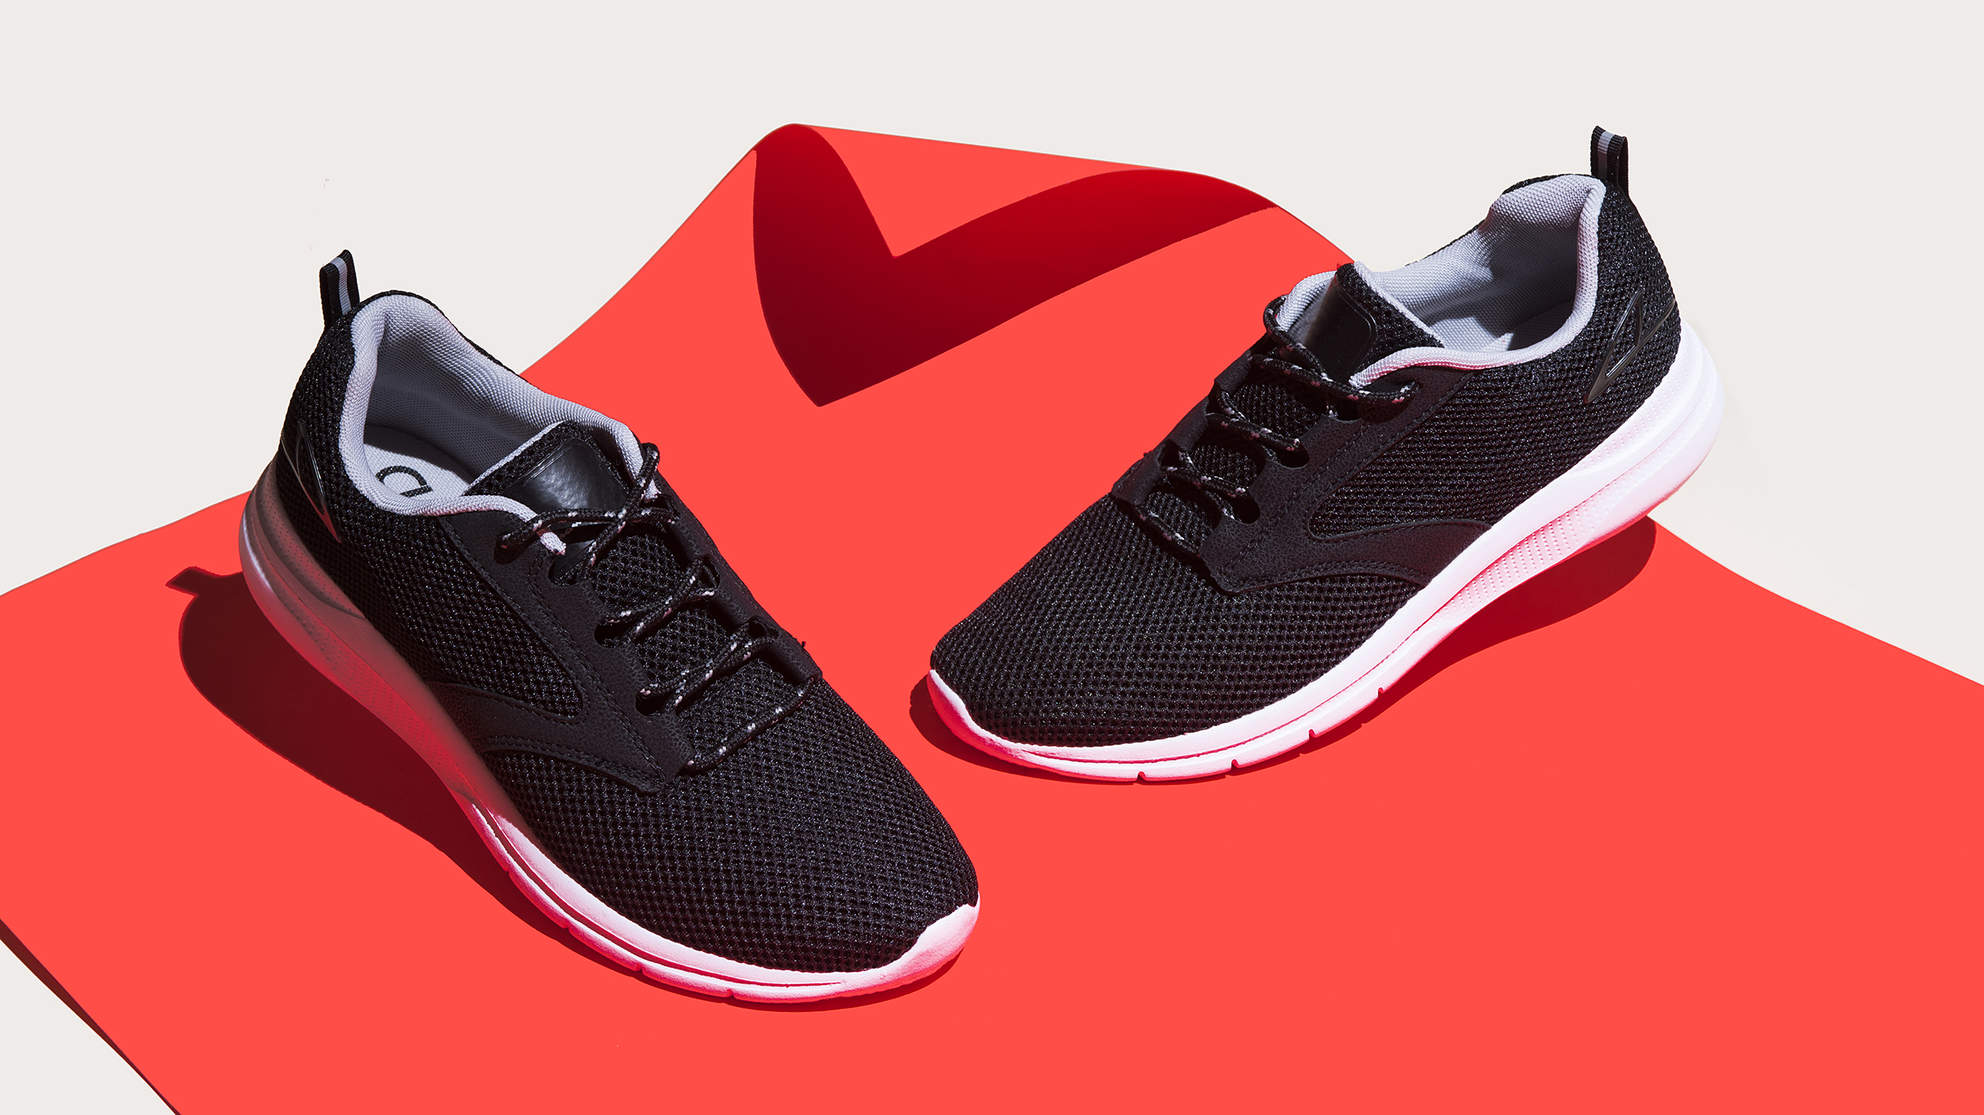 sneakers-shoes-sport-fitness-running-health-exercise-motto-stock